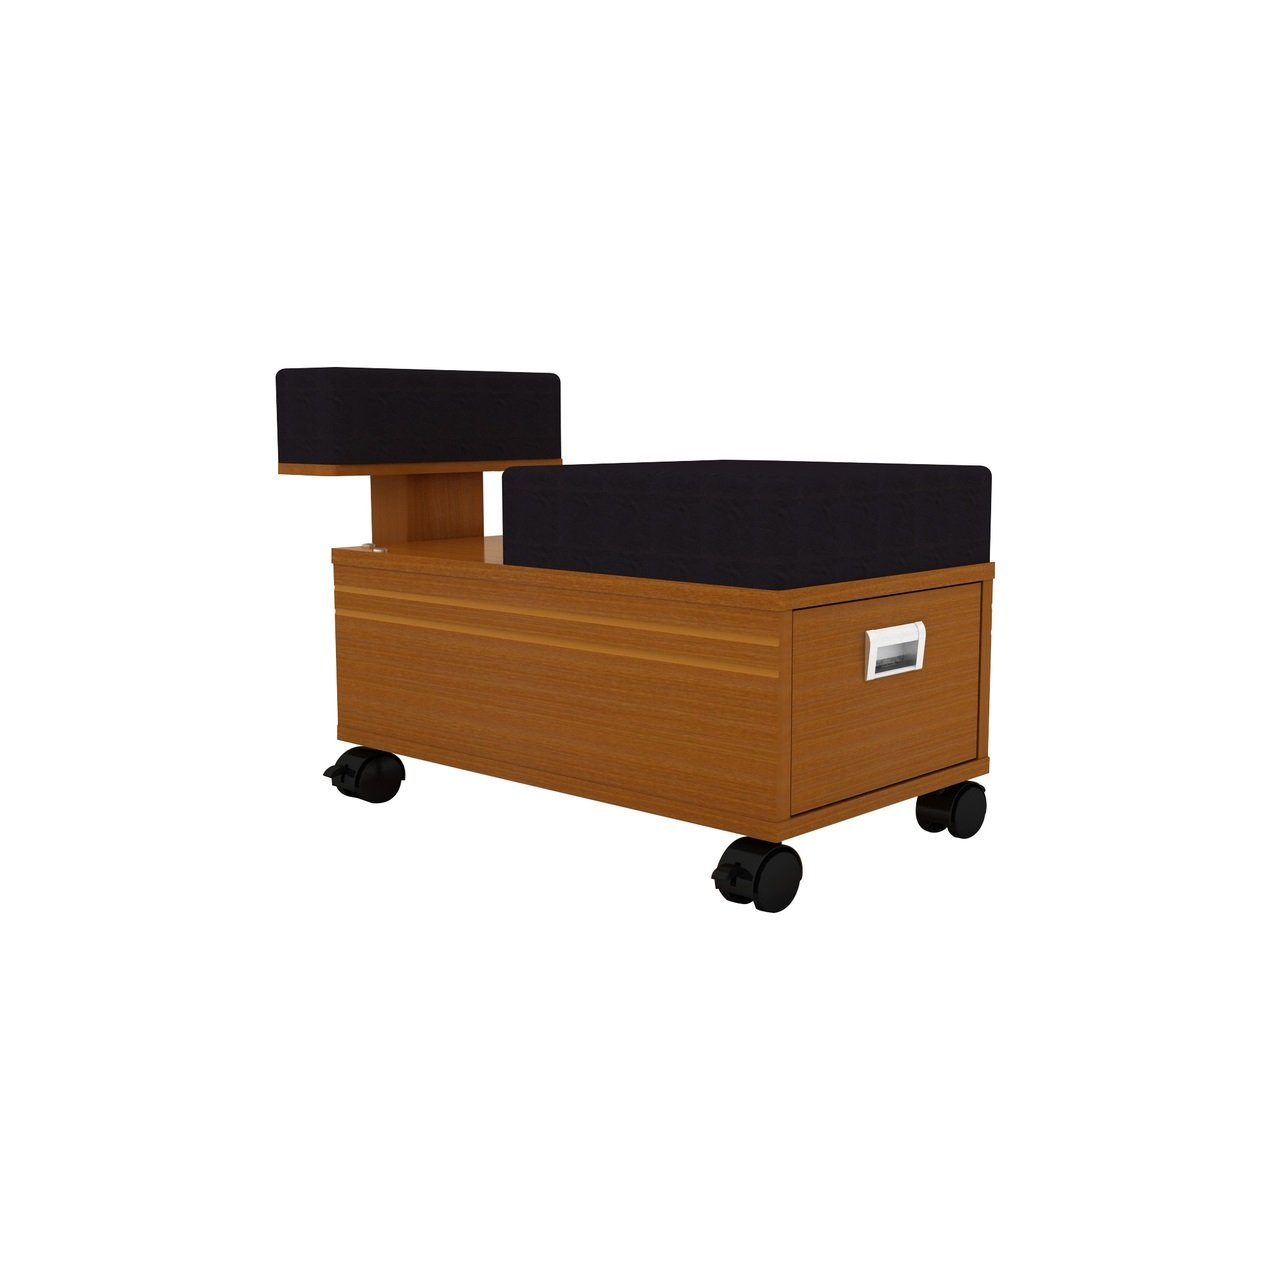 Pedicure Trolley Sedona Pedicure Cart with Foot Rest for Nail Salon and Spa